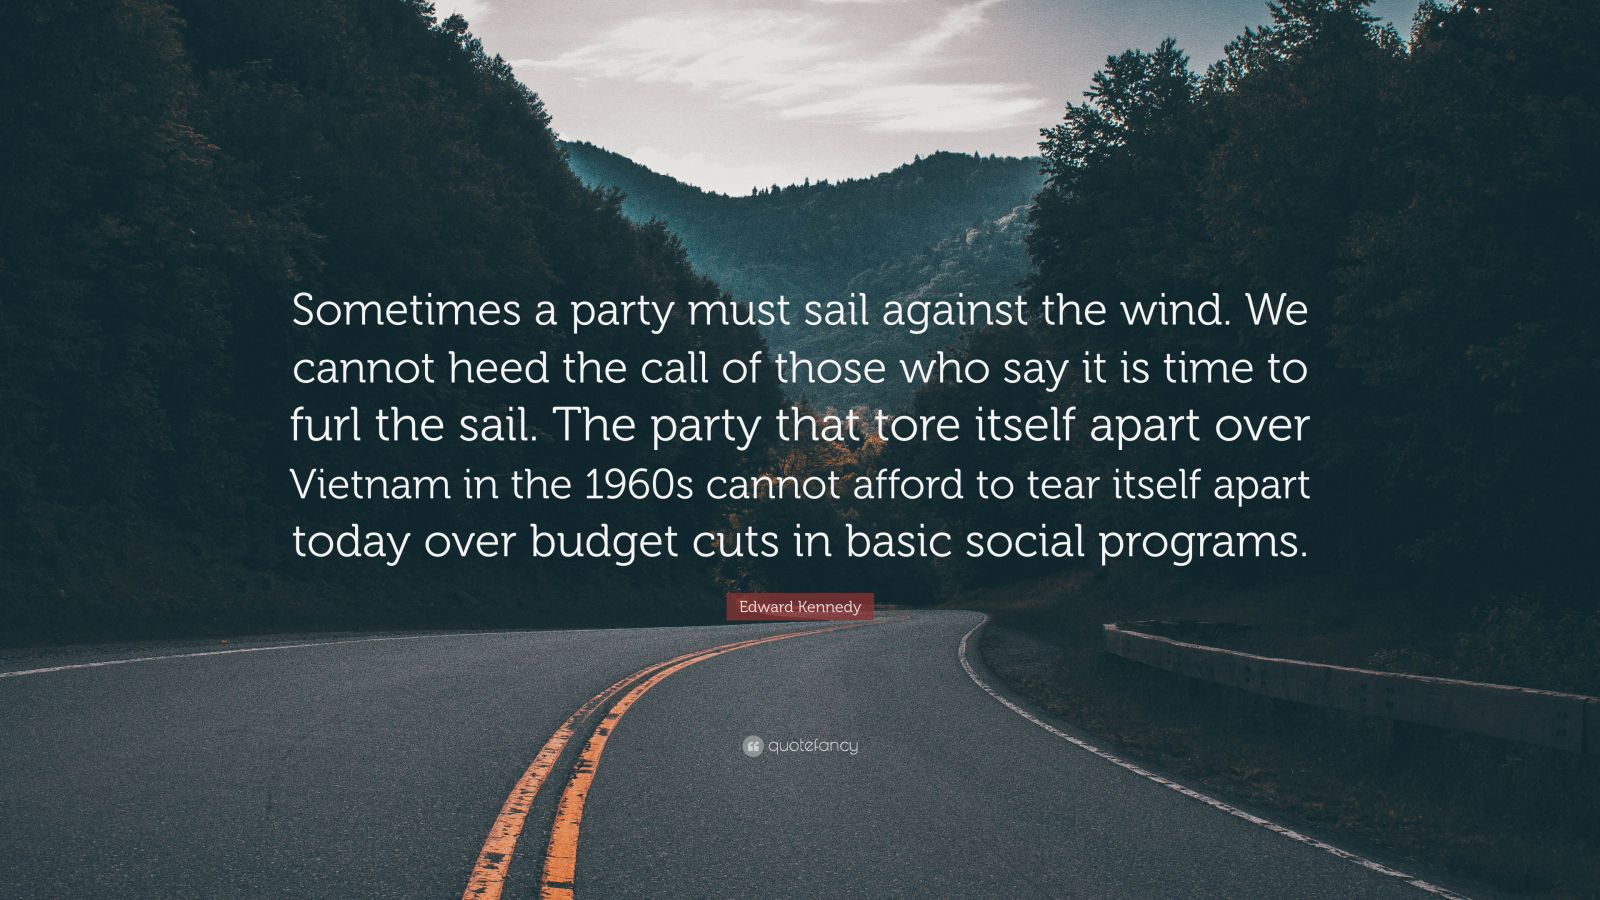 """Edward Kennedy Quote: """"Sometimes a party must sail against the wind. We cannot heed the call of those who say it is time to furl the sail. The party that tore itself apart over Vietnam in the 1960s cannot afford to tear itself apart today over budget cuts in basic social programs."""""""